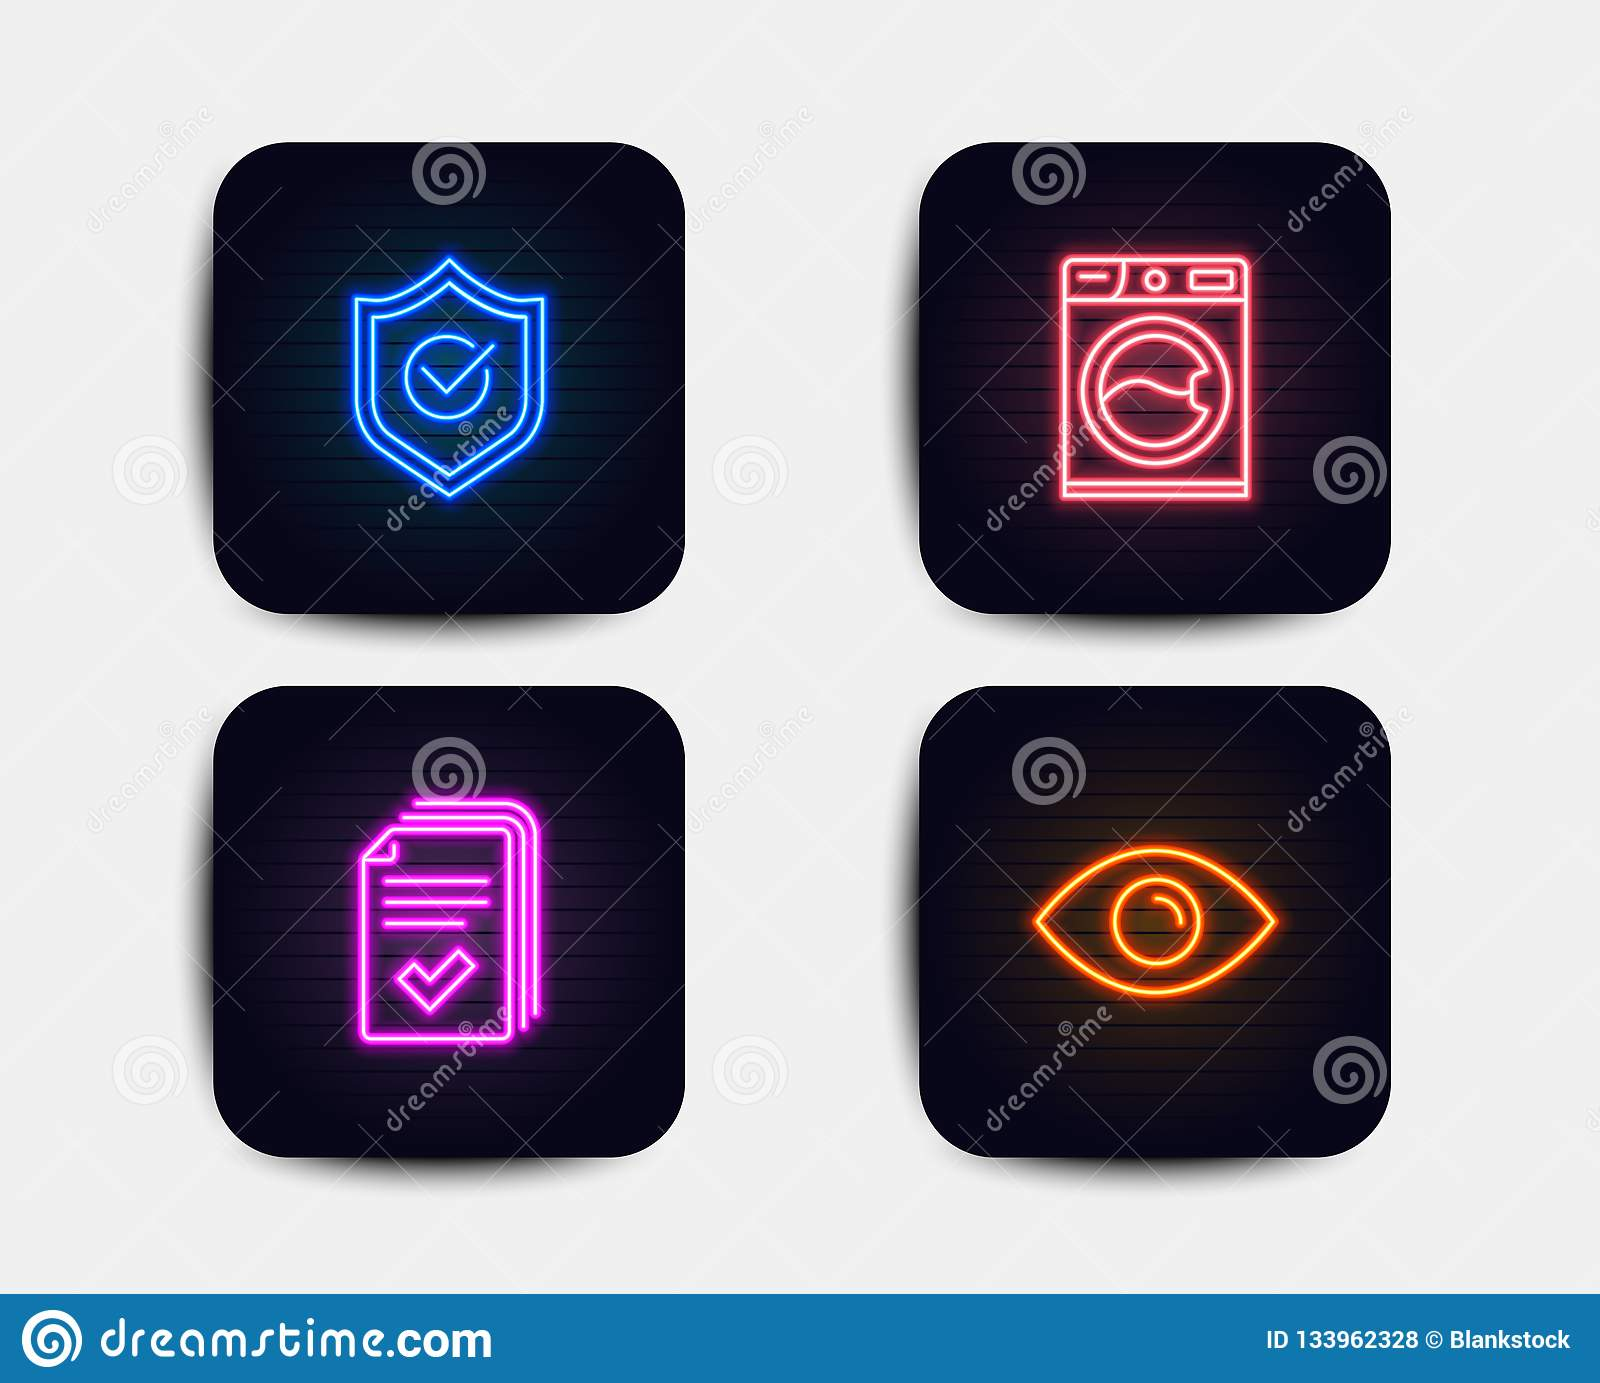 Handout, Washing Machine And Approved Shield Icons. Eye